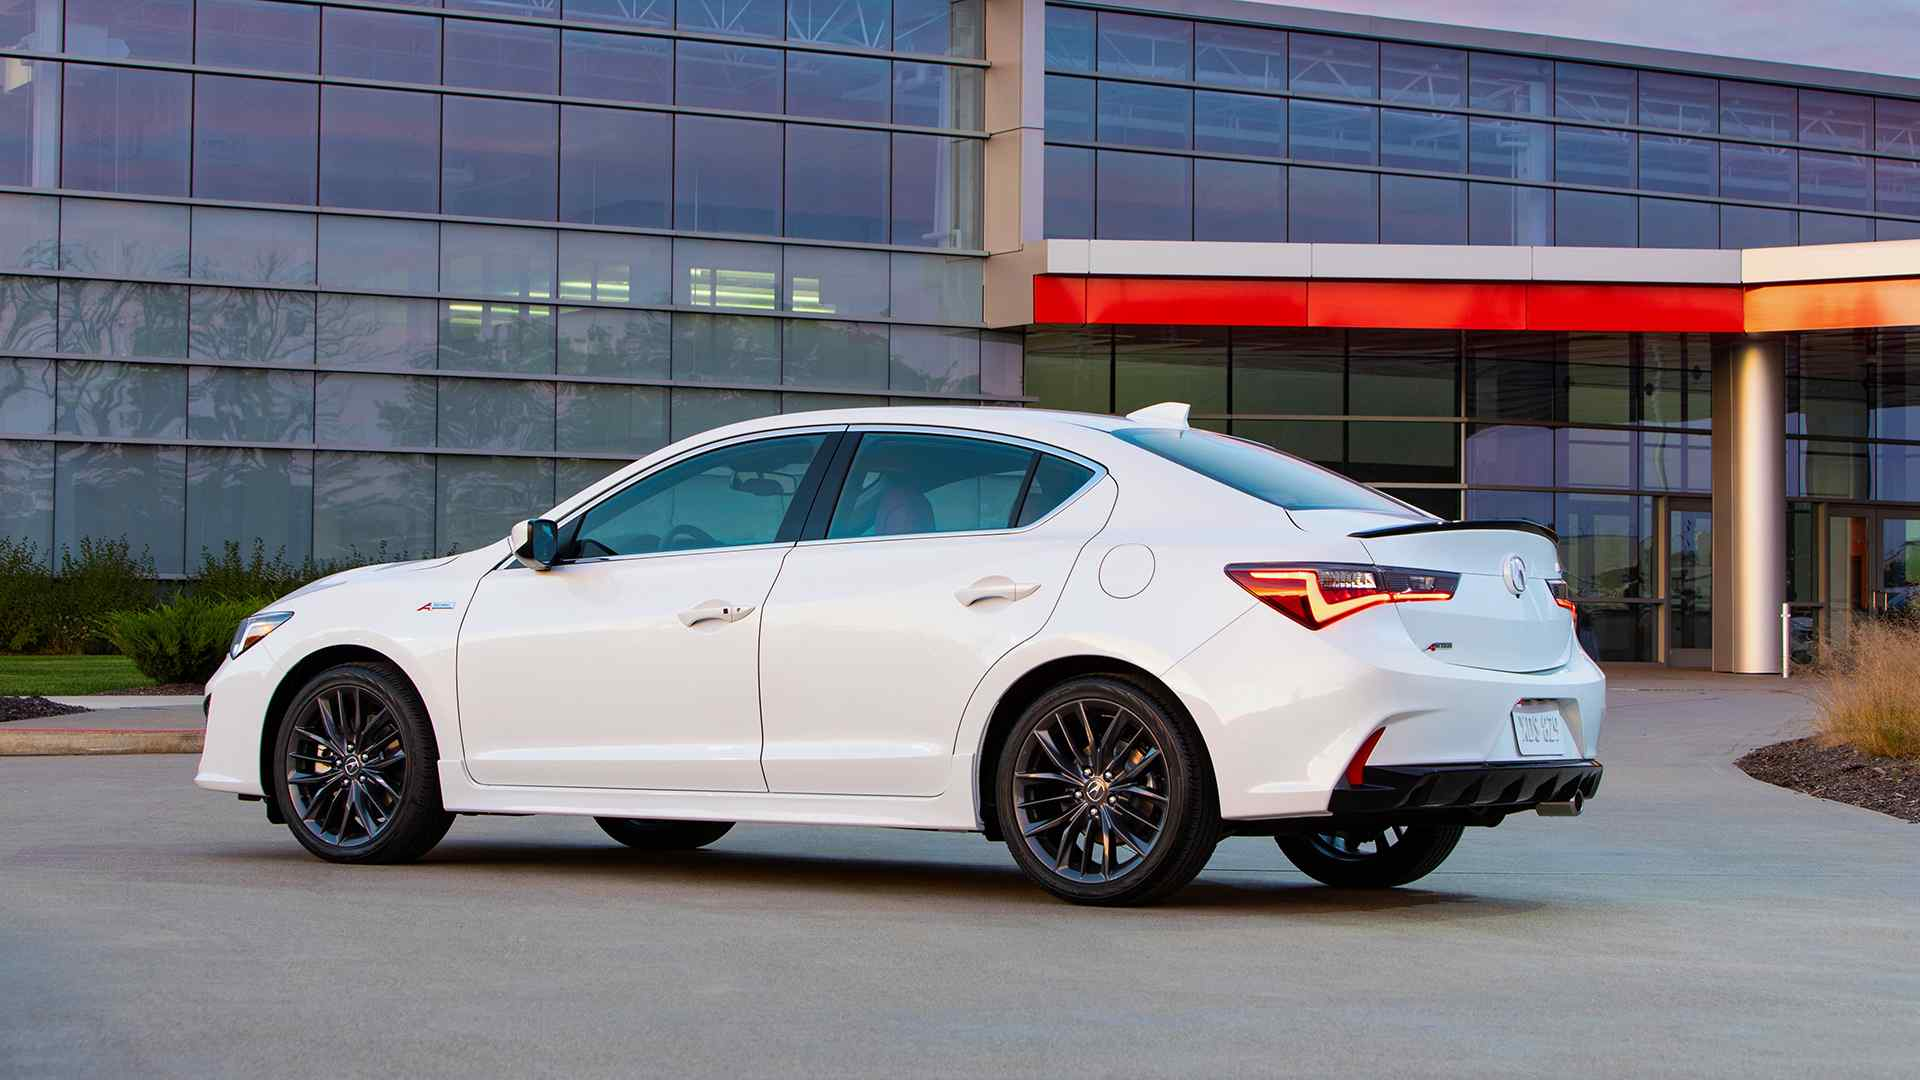 29 Gallery of 2019 Acura Ilx Price and Review for 2019 Acura Ilx